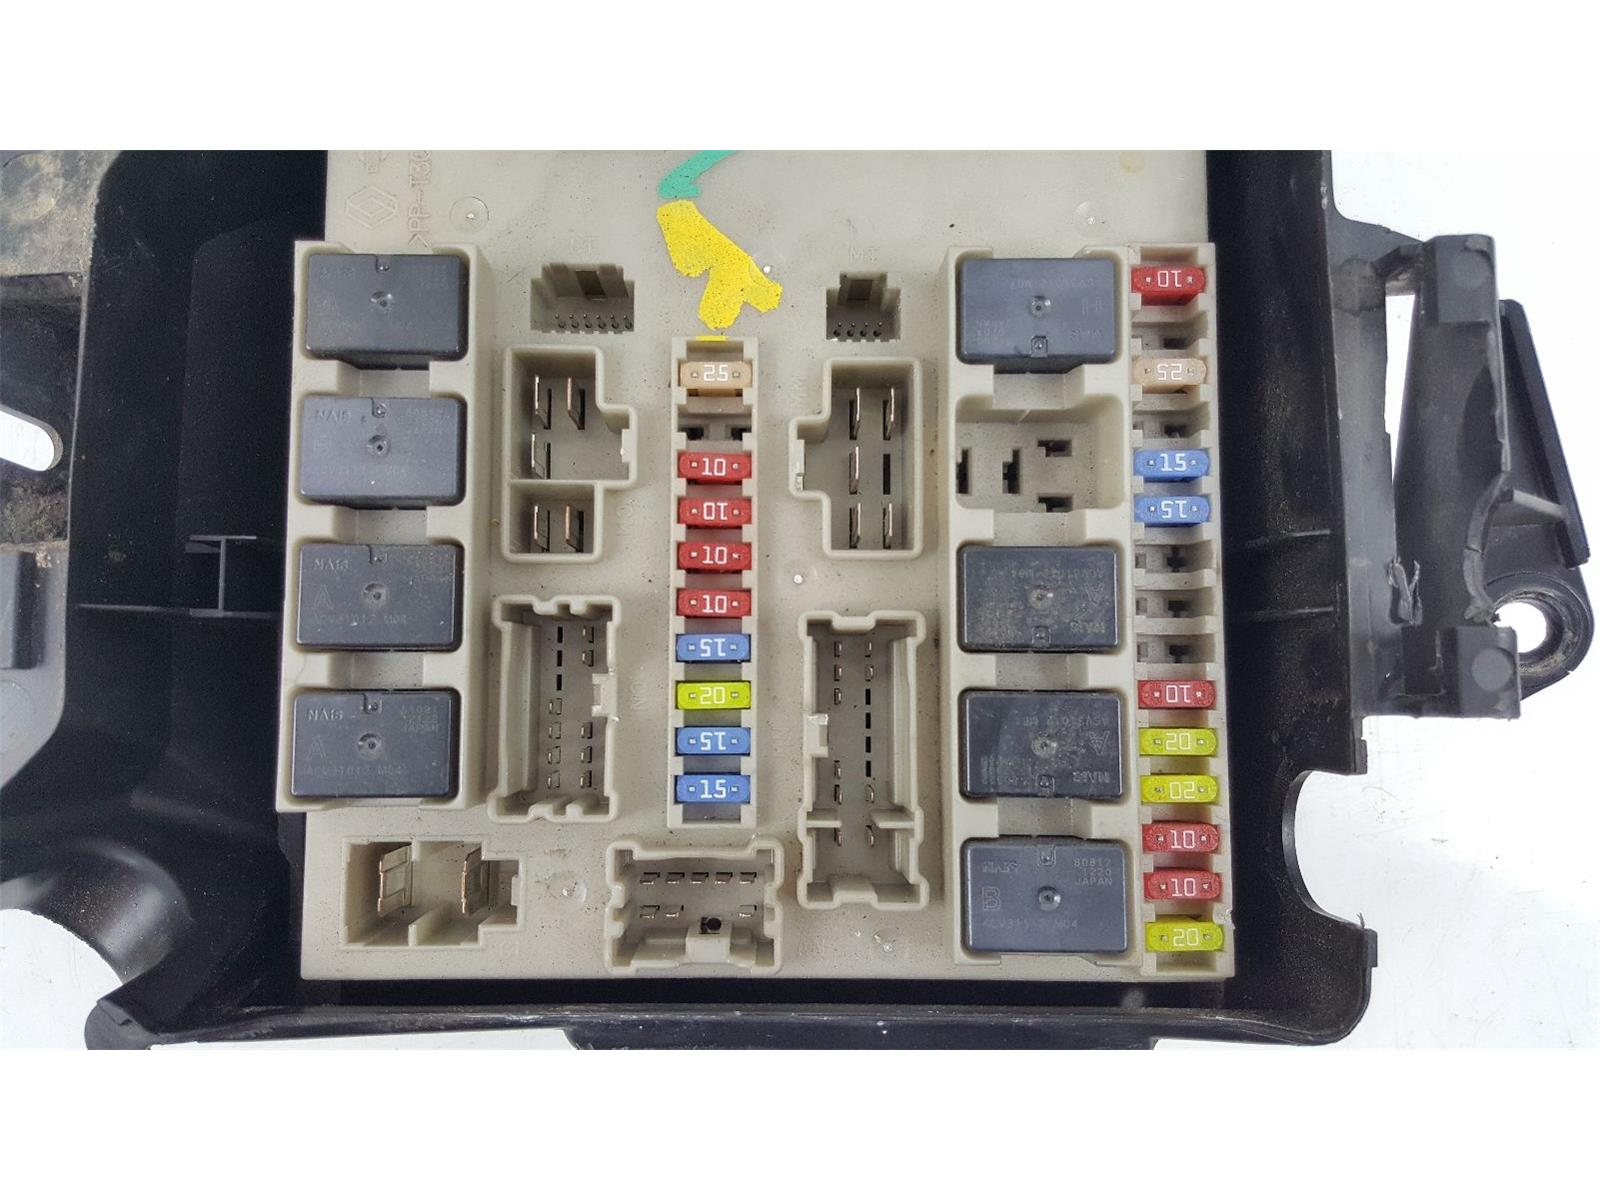 hight resolution of  2009 2012 mk3 renault clio fuse box 902663 2 0 petrol renaultsport